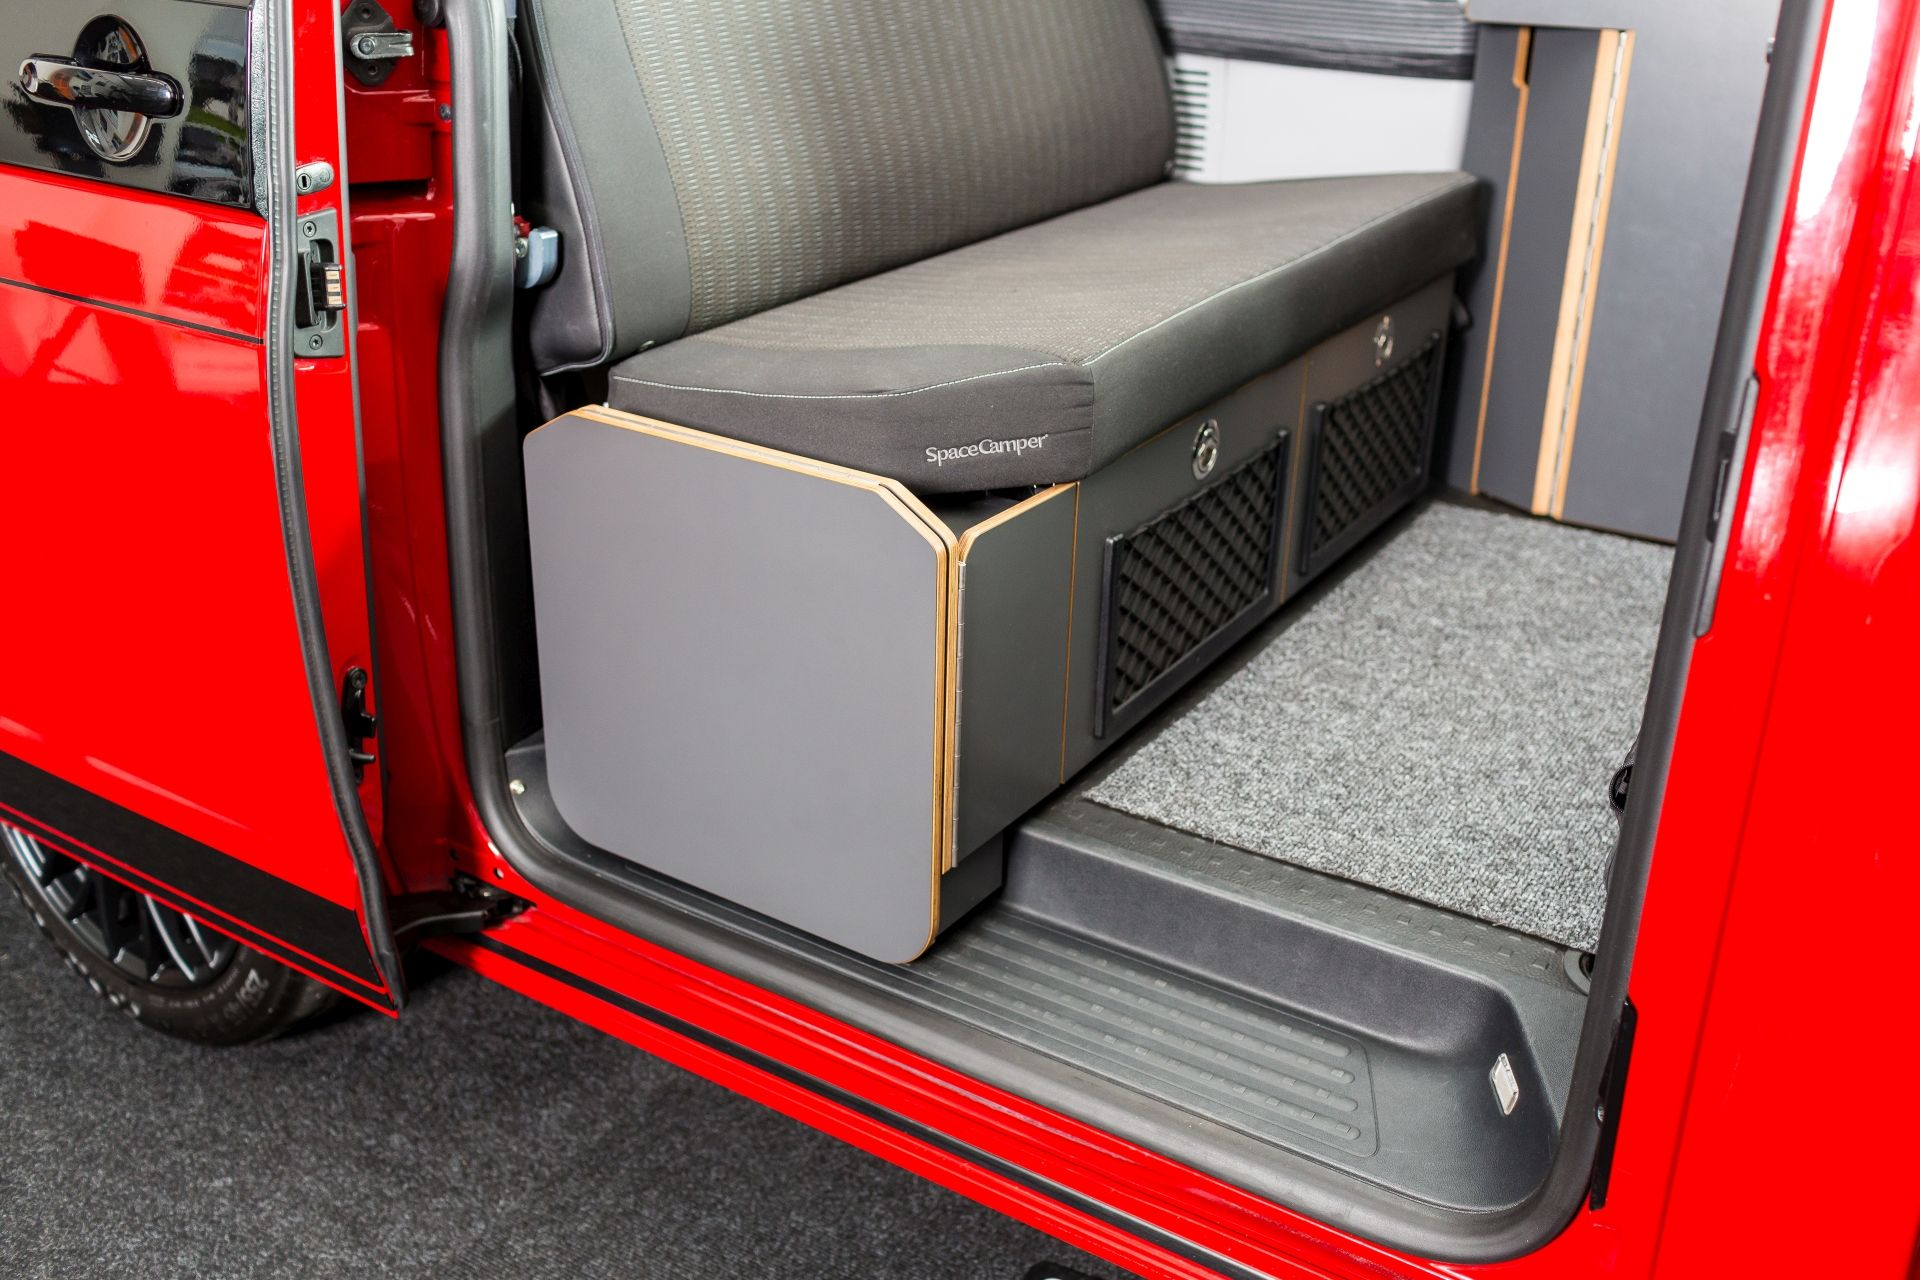 seitlicher schrank mit klapptisch der spacecamper vw t6 camping ausbau reisemobil wohnmobil. Black Bedroom Furniture Sets. Home Design Ideas